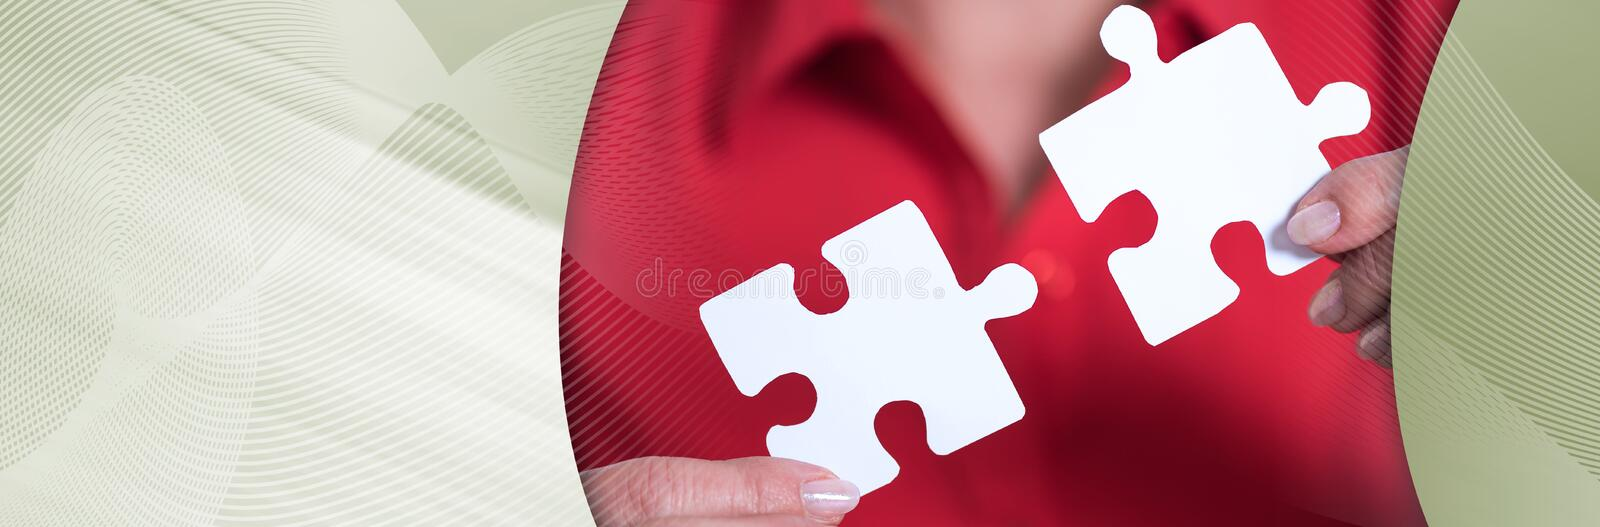 Concept of teamwork; panoramic banner. Hands joining two puzzle pieces, teamwork concept; panoramic banner royalty free stock images